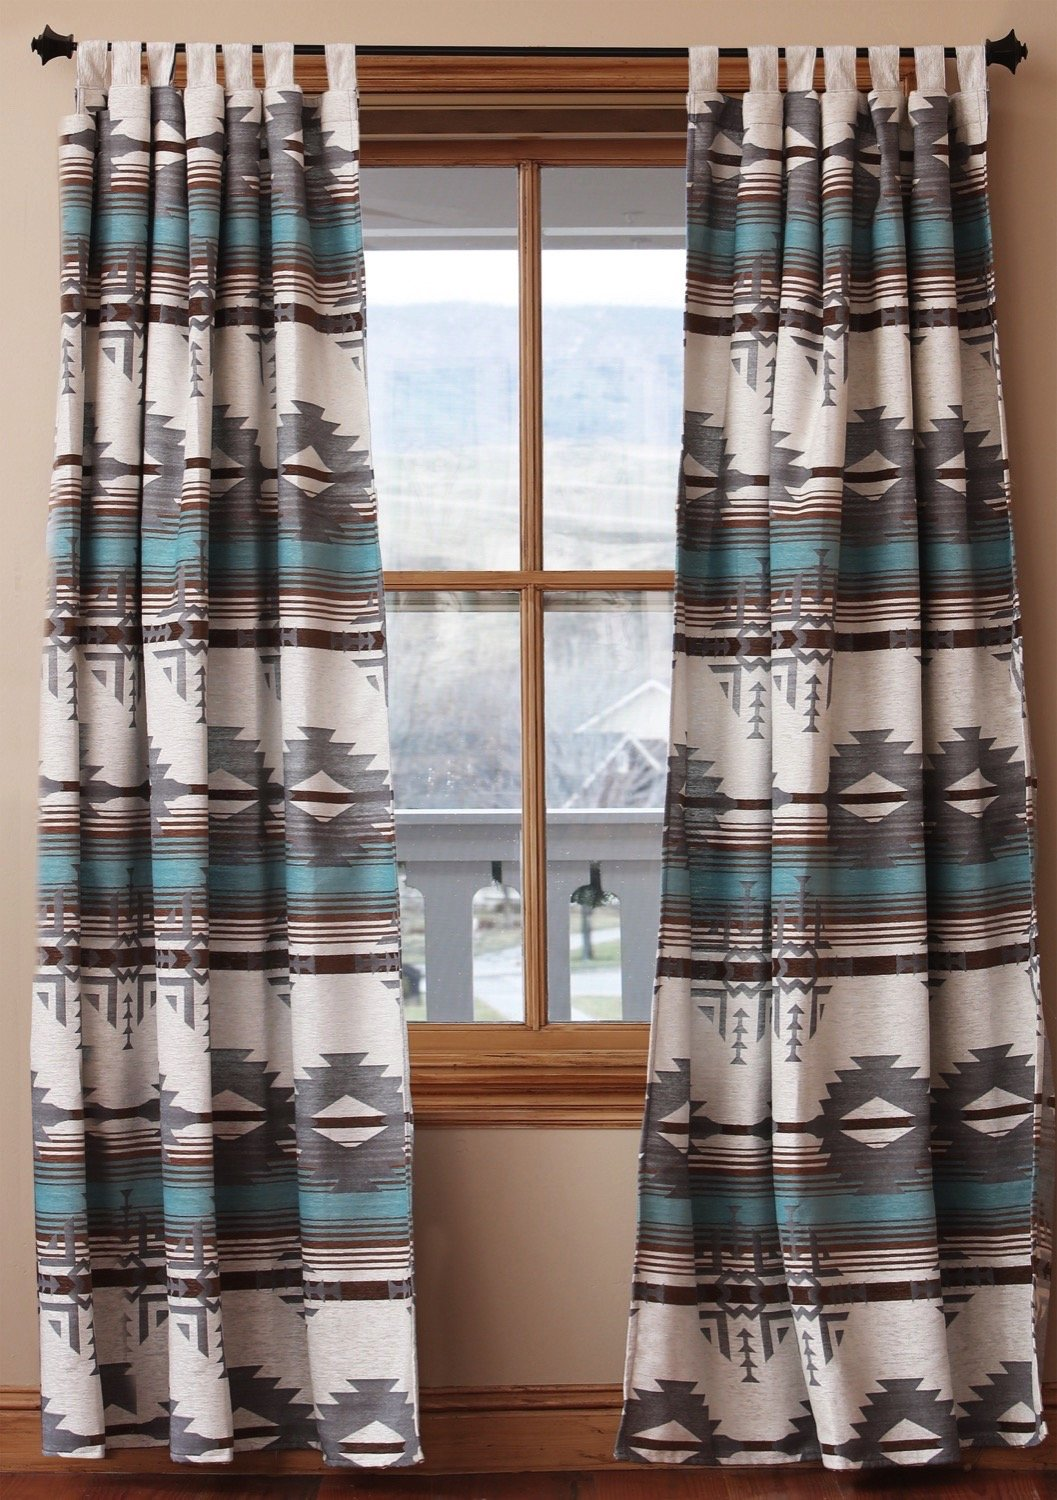 Badlands Sky Drapes Carstens - unique linens online